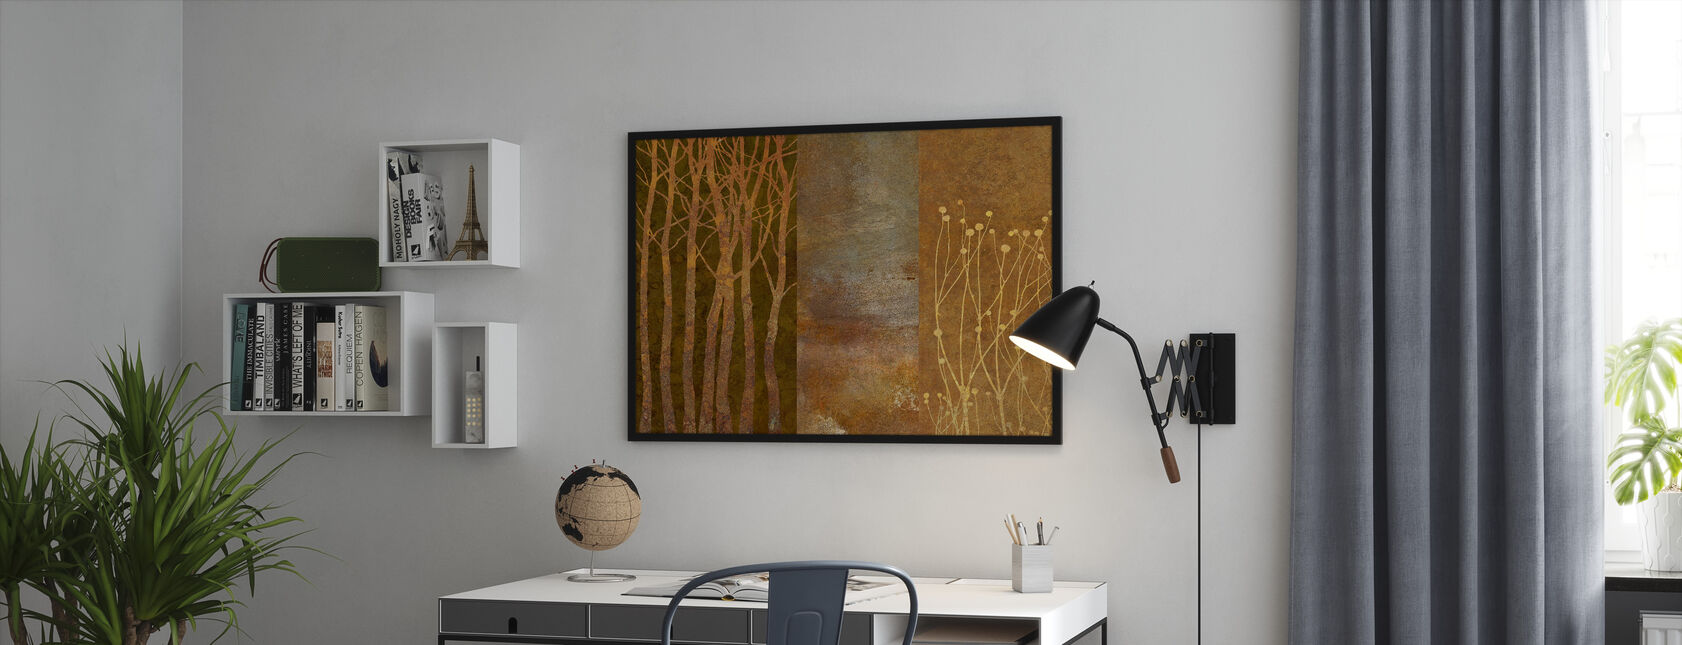 Collage in Copper - Framed print - Office